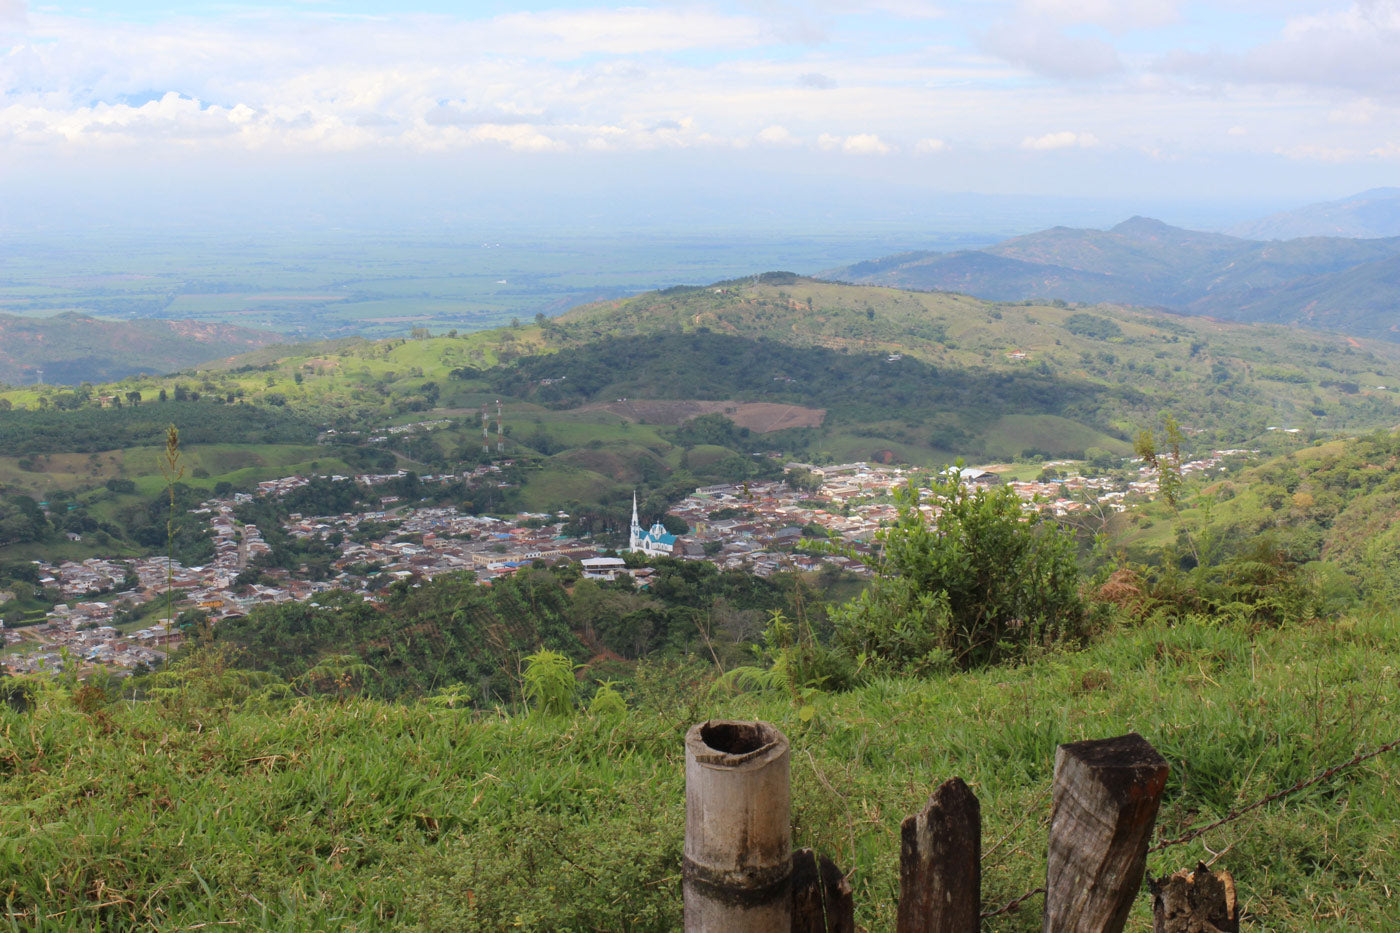 The town of Trujillo from the surrounding hills